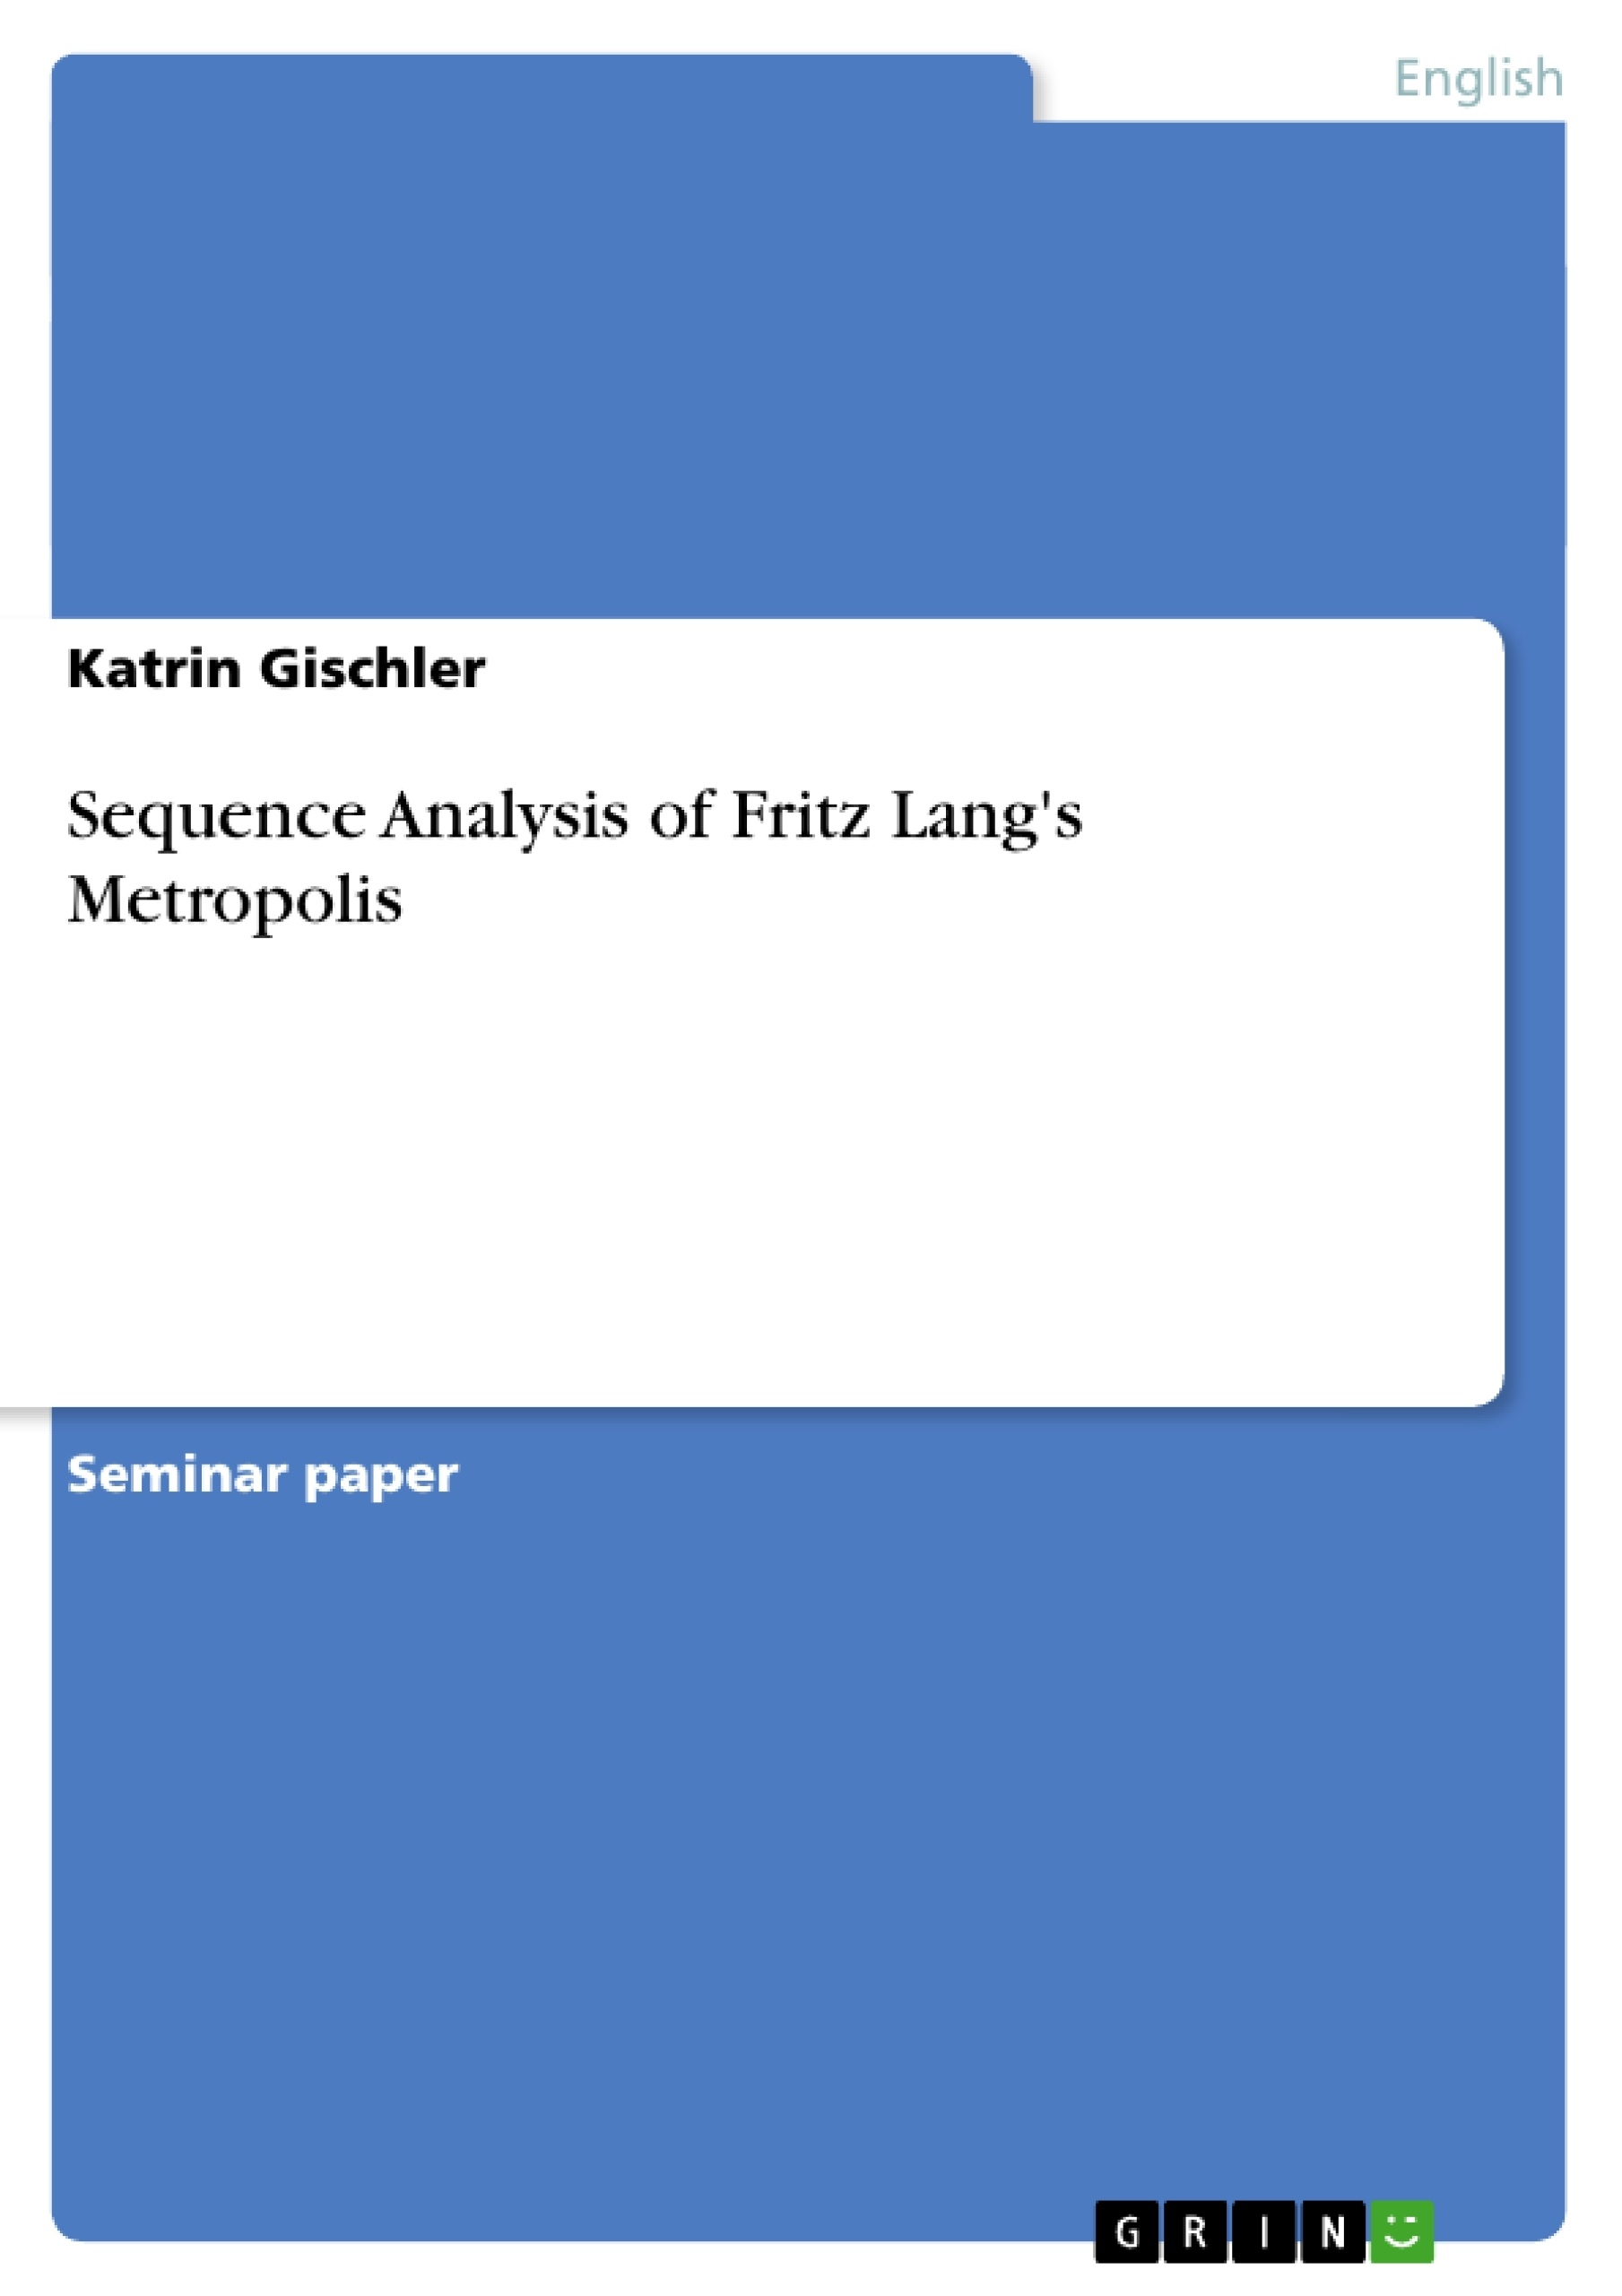 Title: Sequence Analysis of Fritz Lang's Metropolis